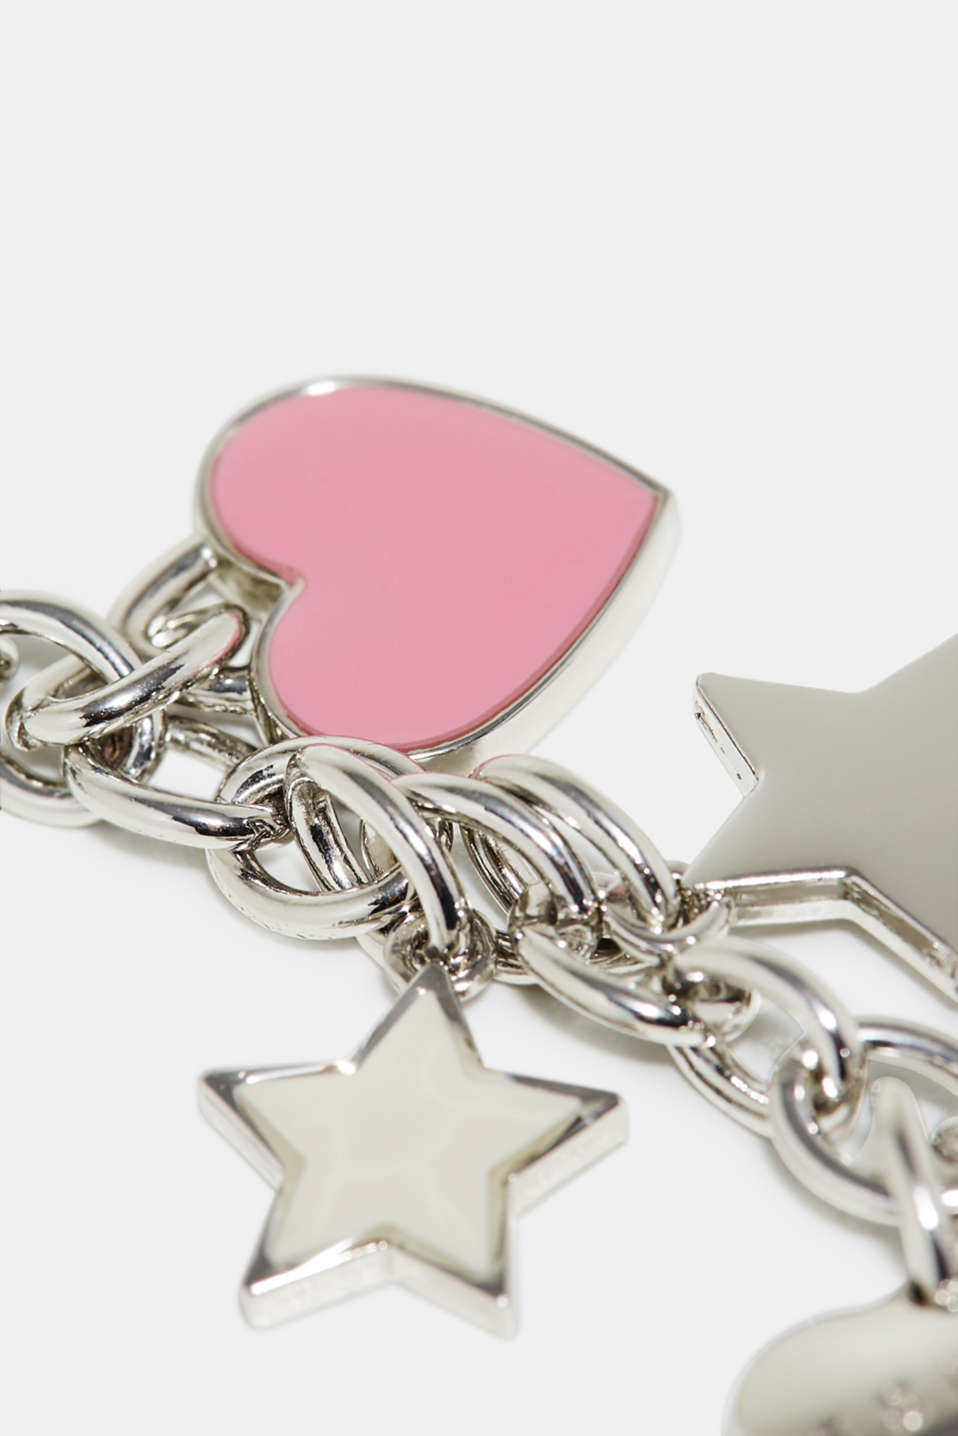 Key-ring with metal charms